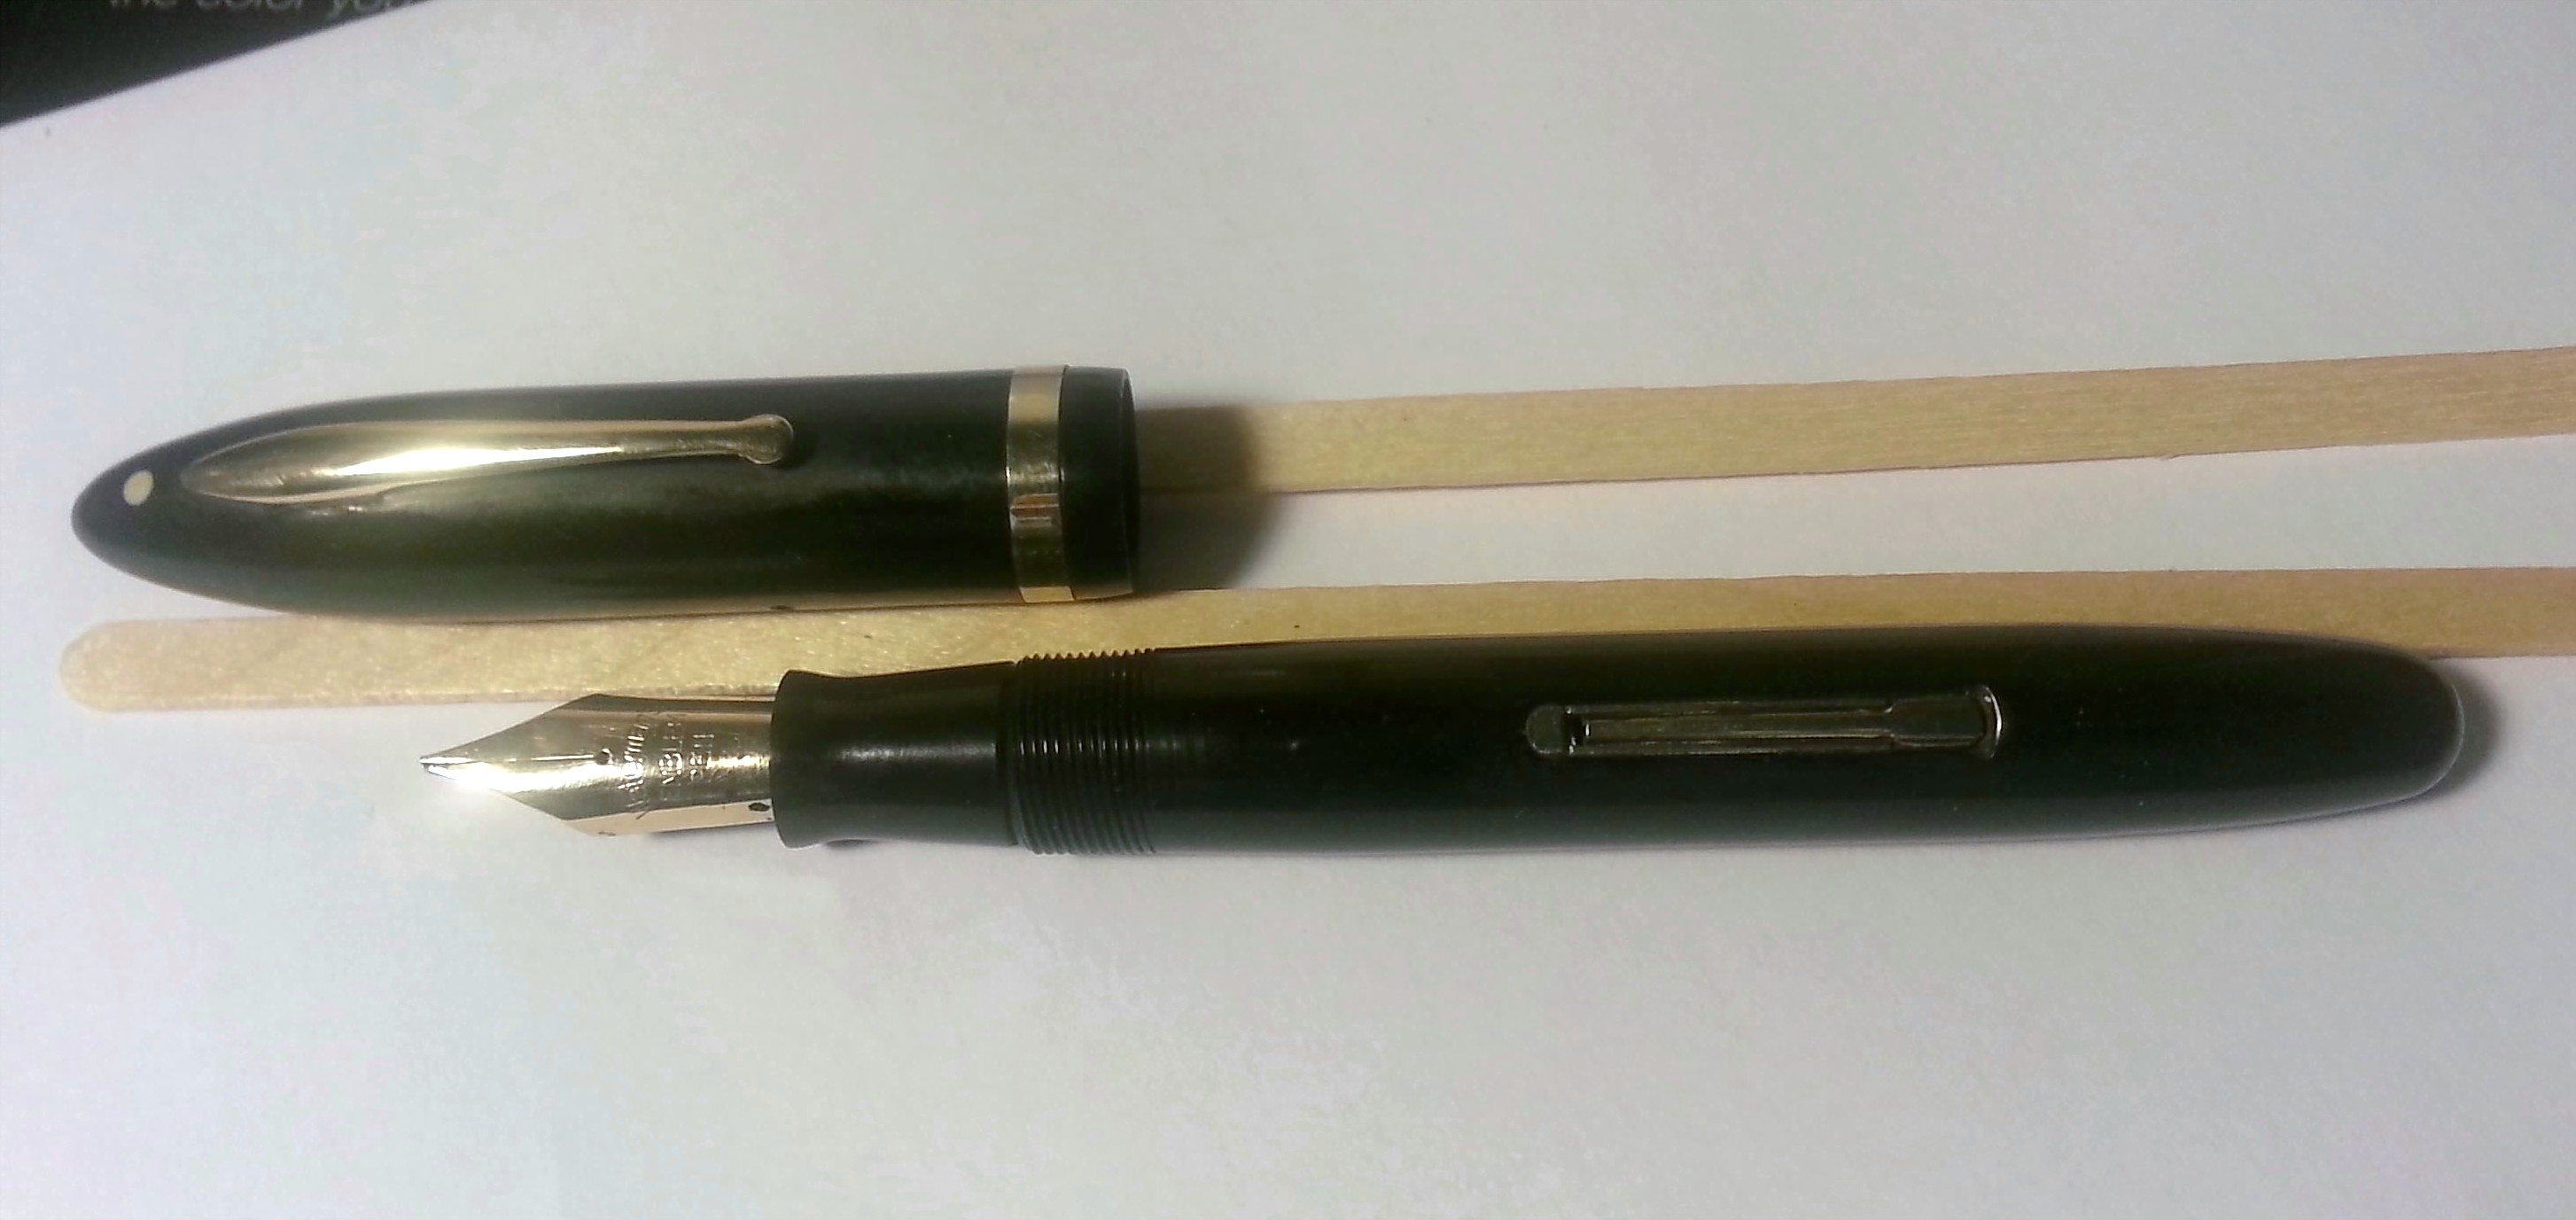 waterman pen.jpg